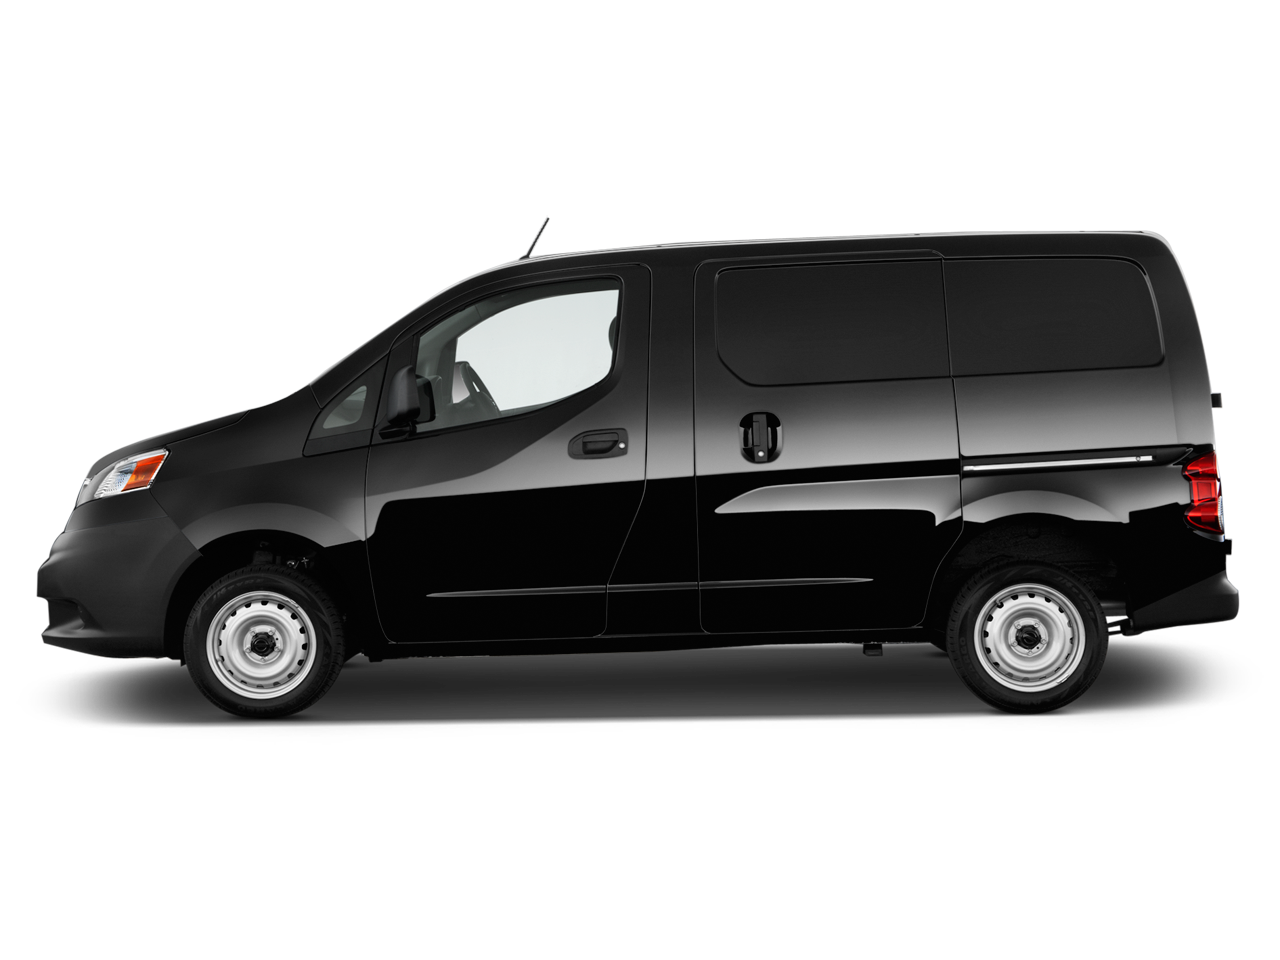 New nv200 for sale nissan of elk grove vanachro Image collections